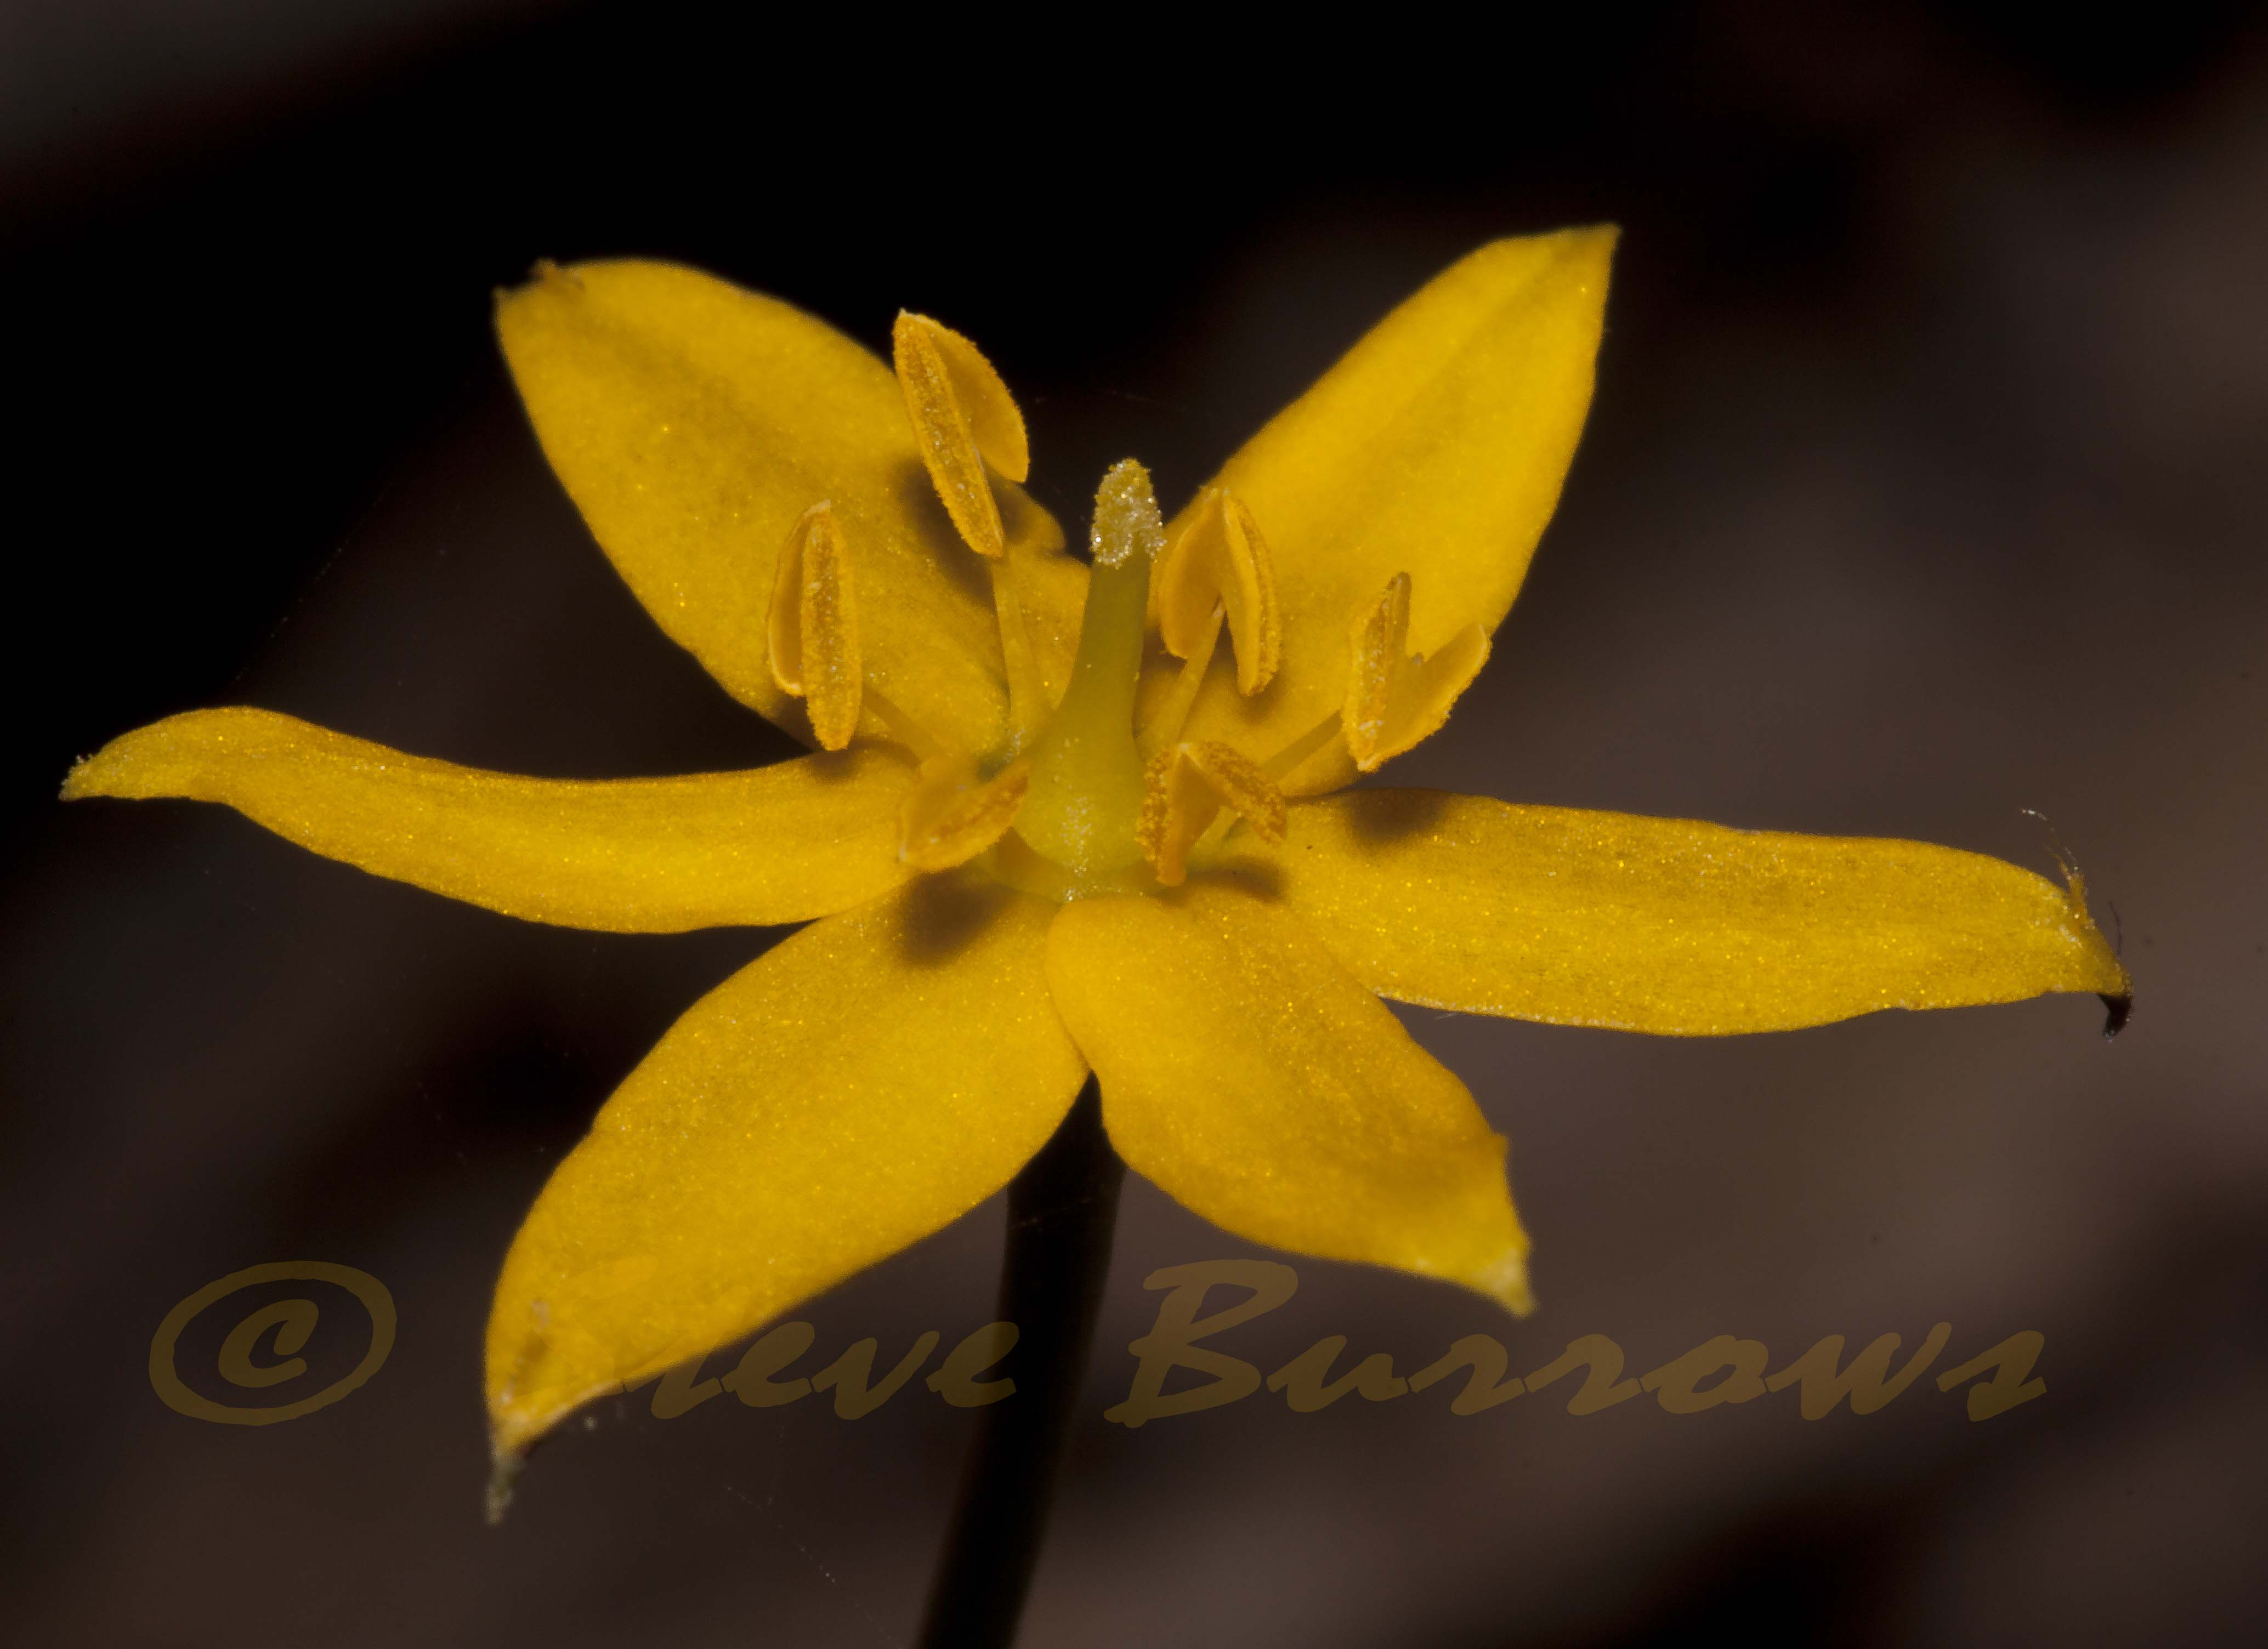 Image courtesy of Steve Burrows Hypoxis sp.